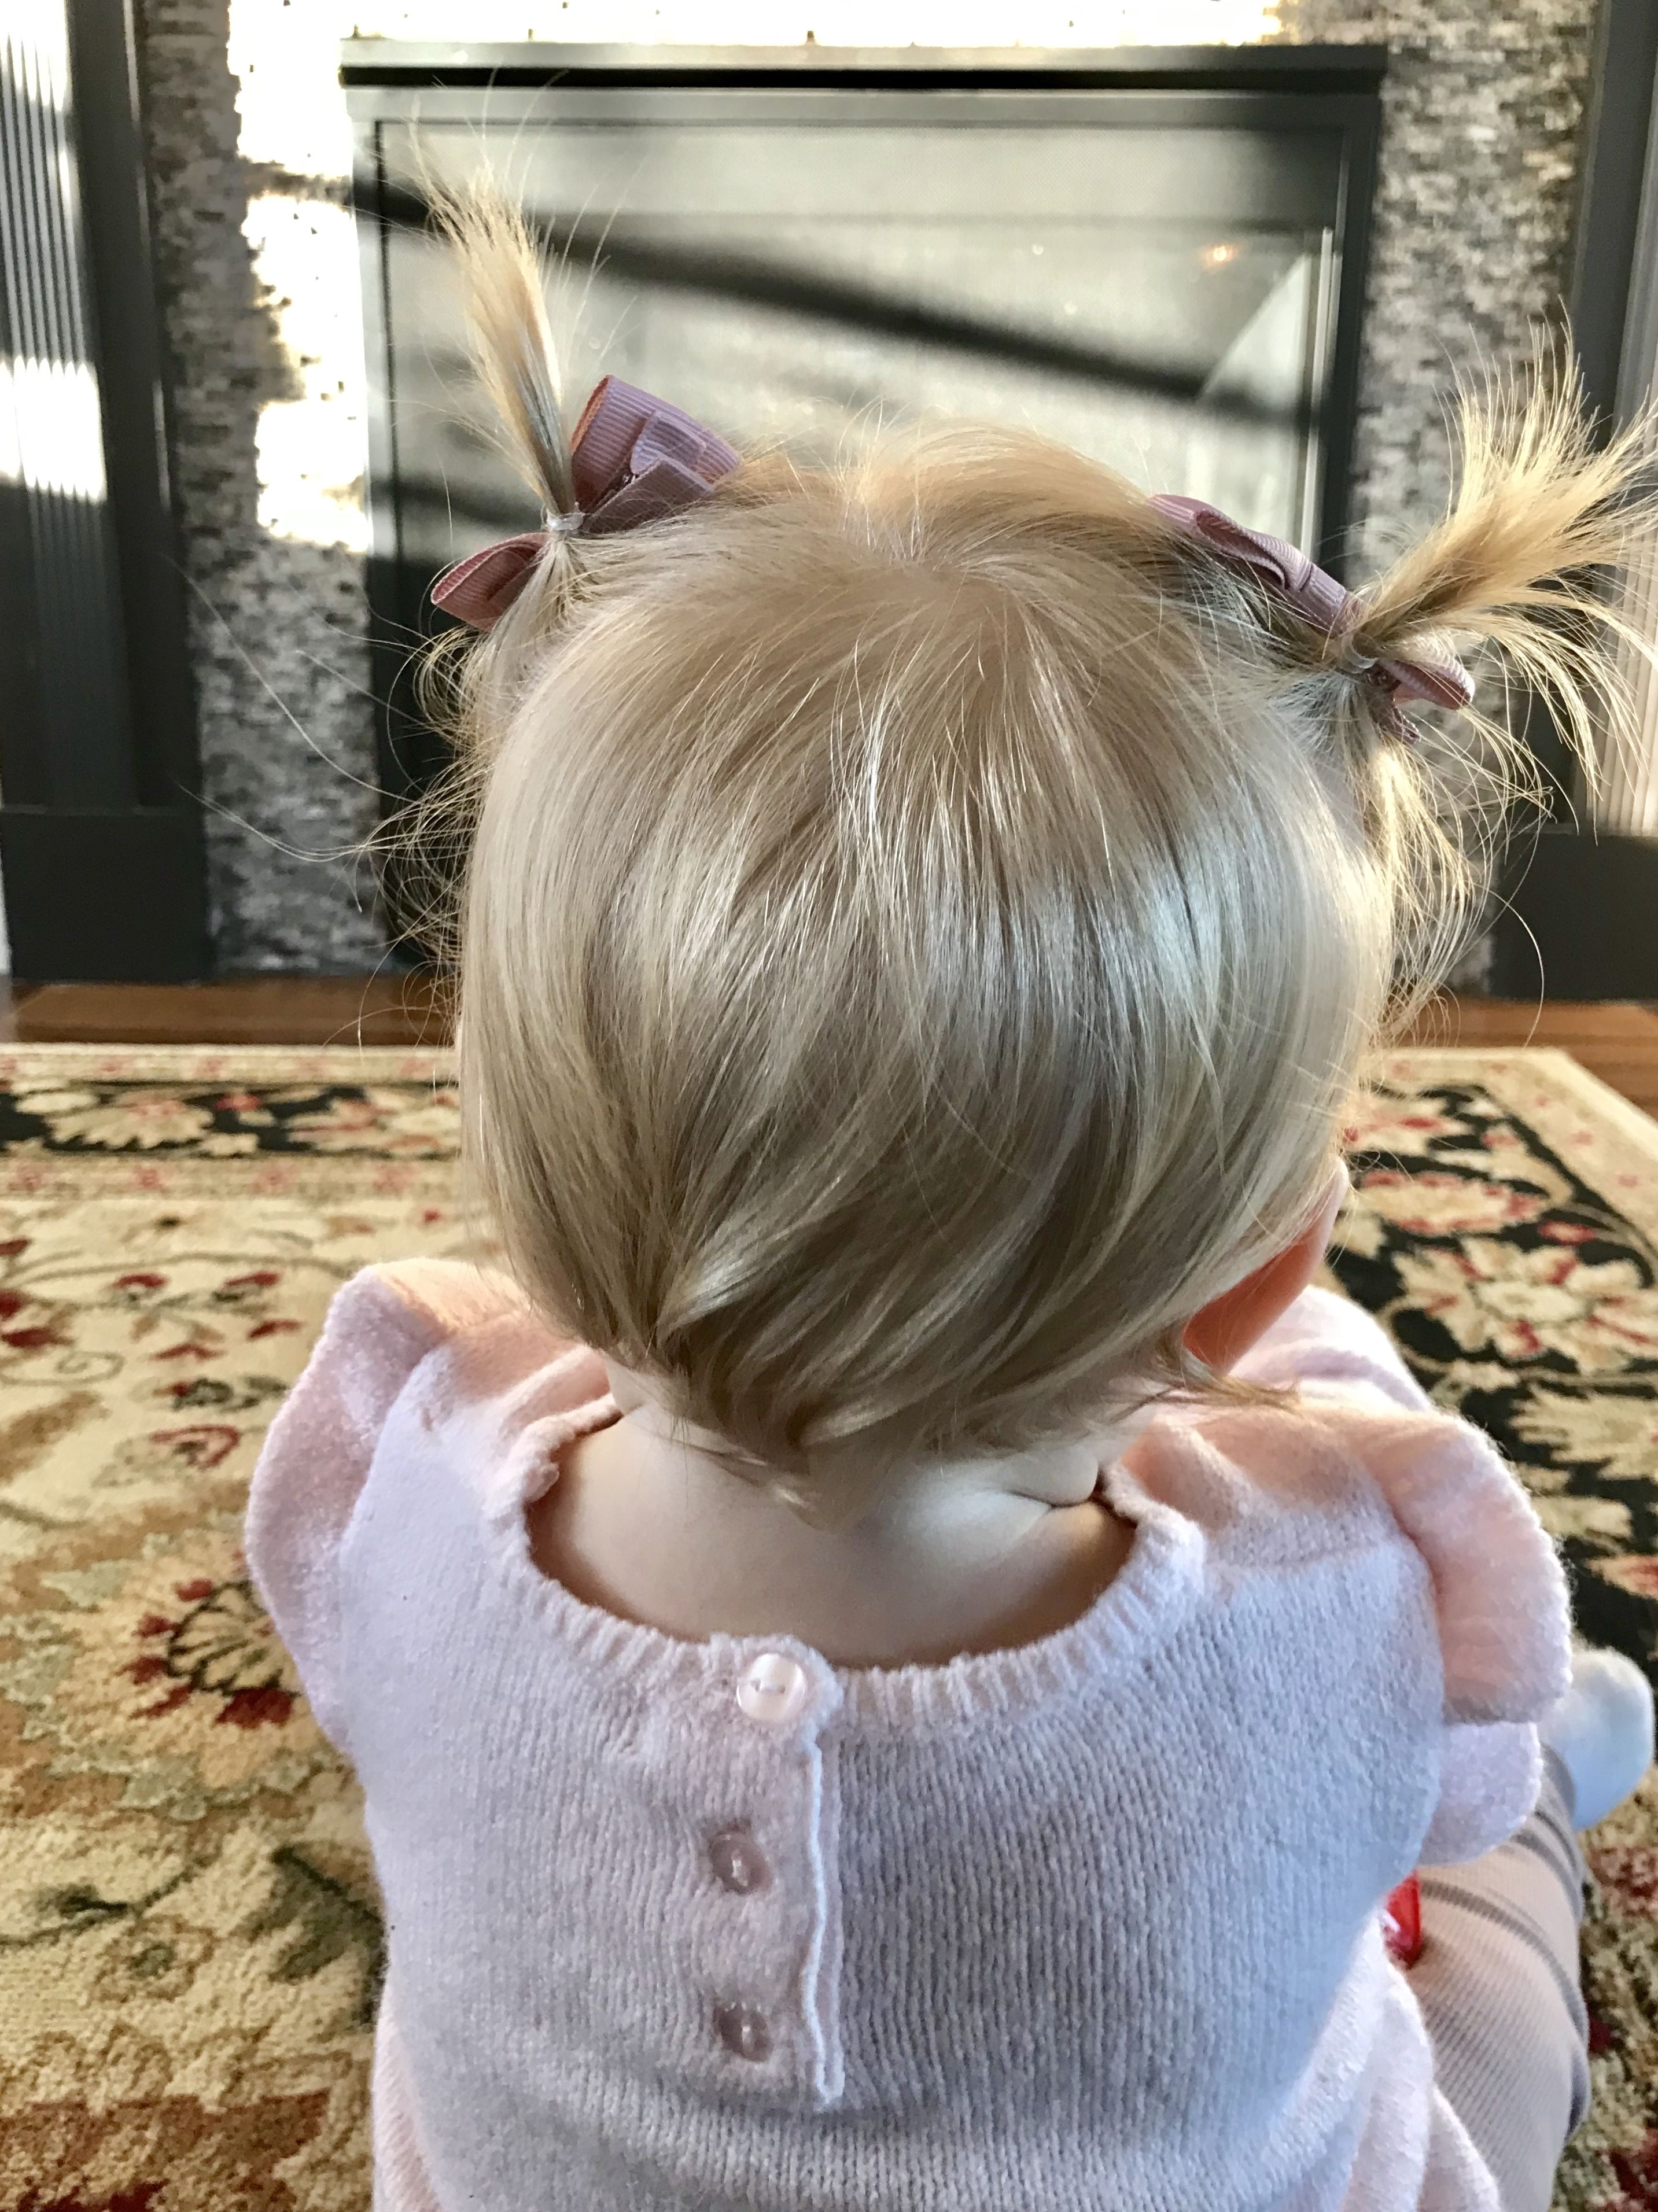 Hairstyles For 1 Year Old Baby Girl : hairstyles, Hairstyle, Blonde, Pigtails, Short, Hairstyles,